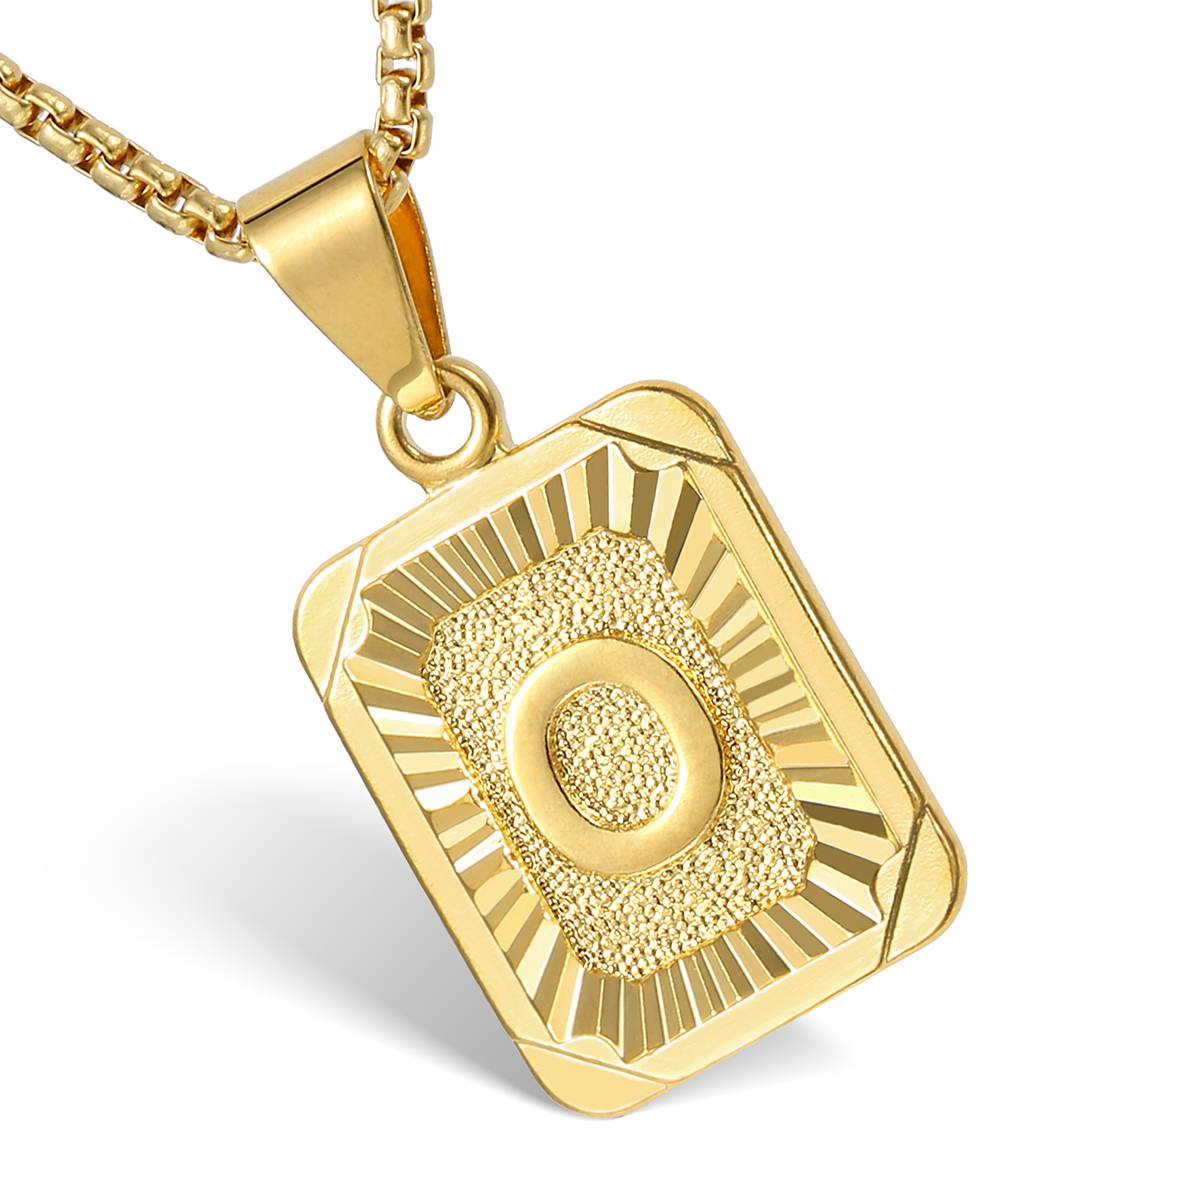 Mens women chain gold filled pendant necklace square initial letter mens women chain gold filled pendant necklace square aloadofball Choice Image